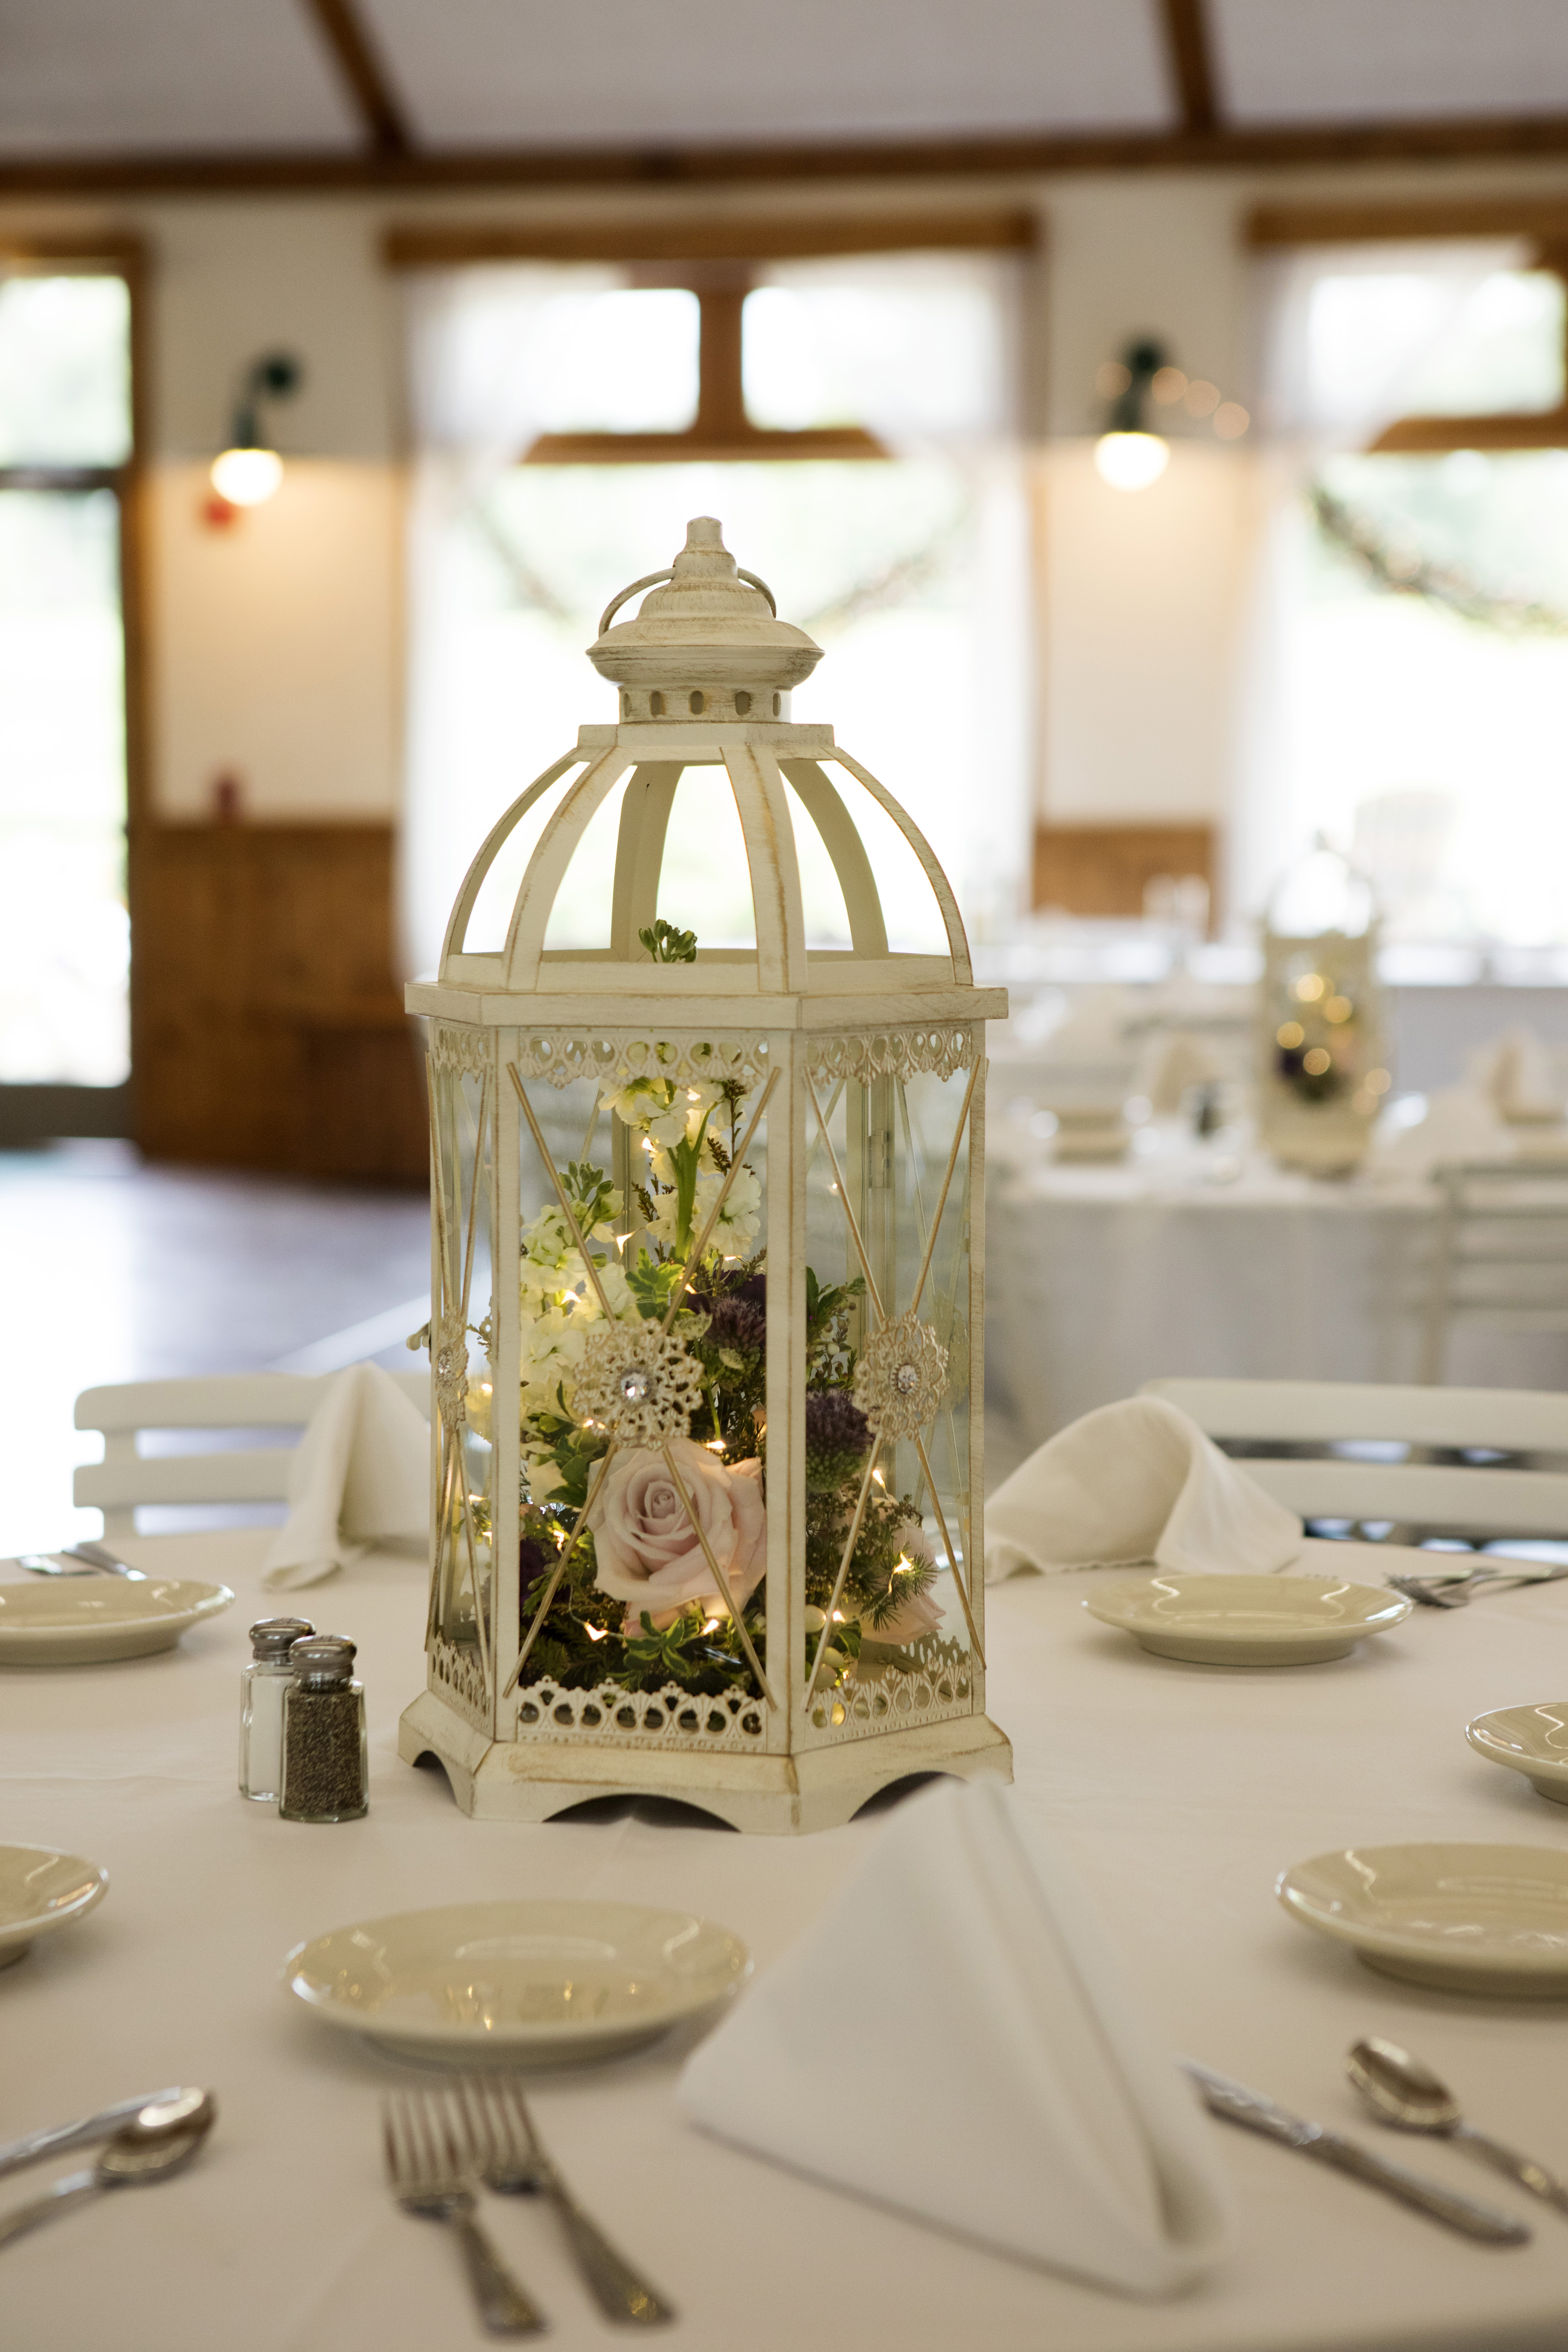 Cream jeweled Lantern